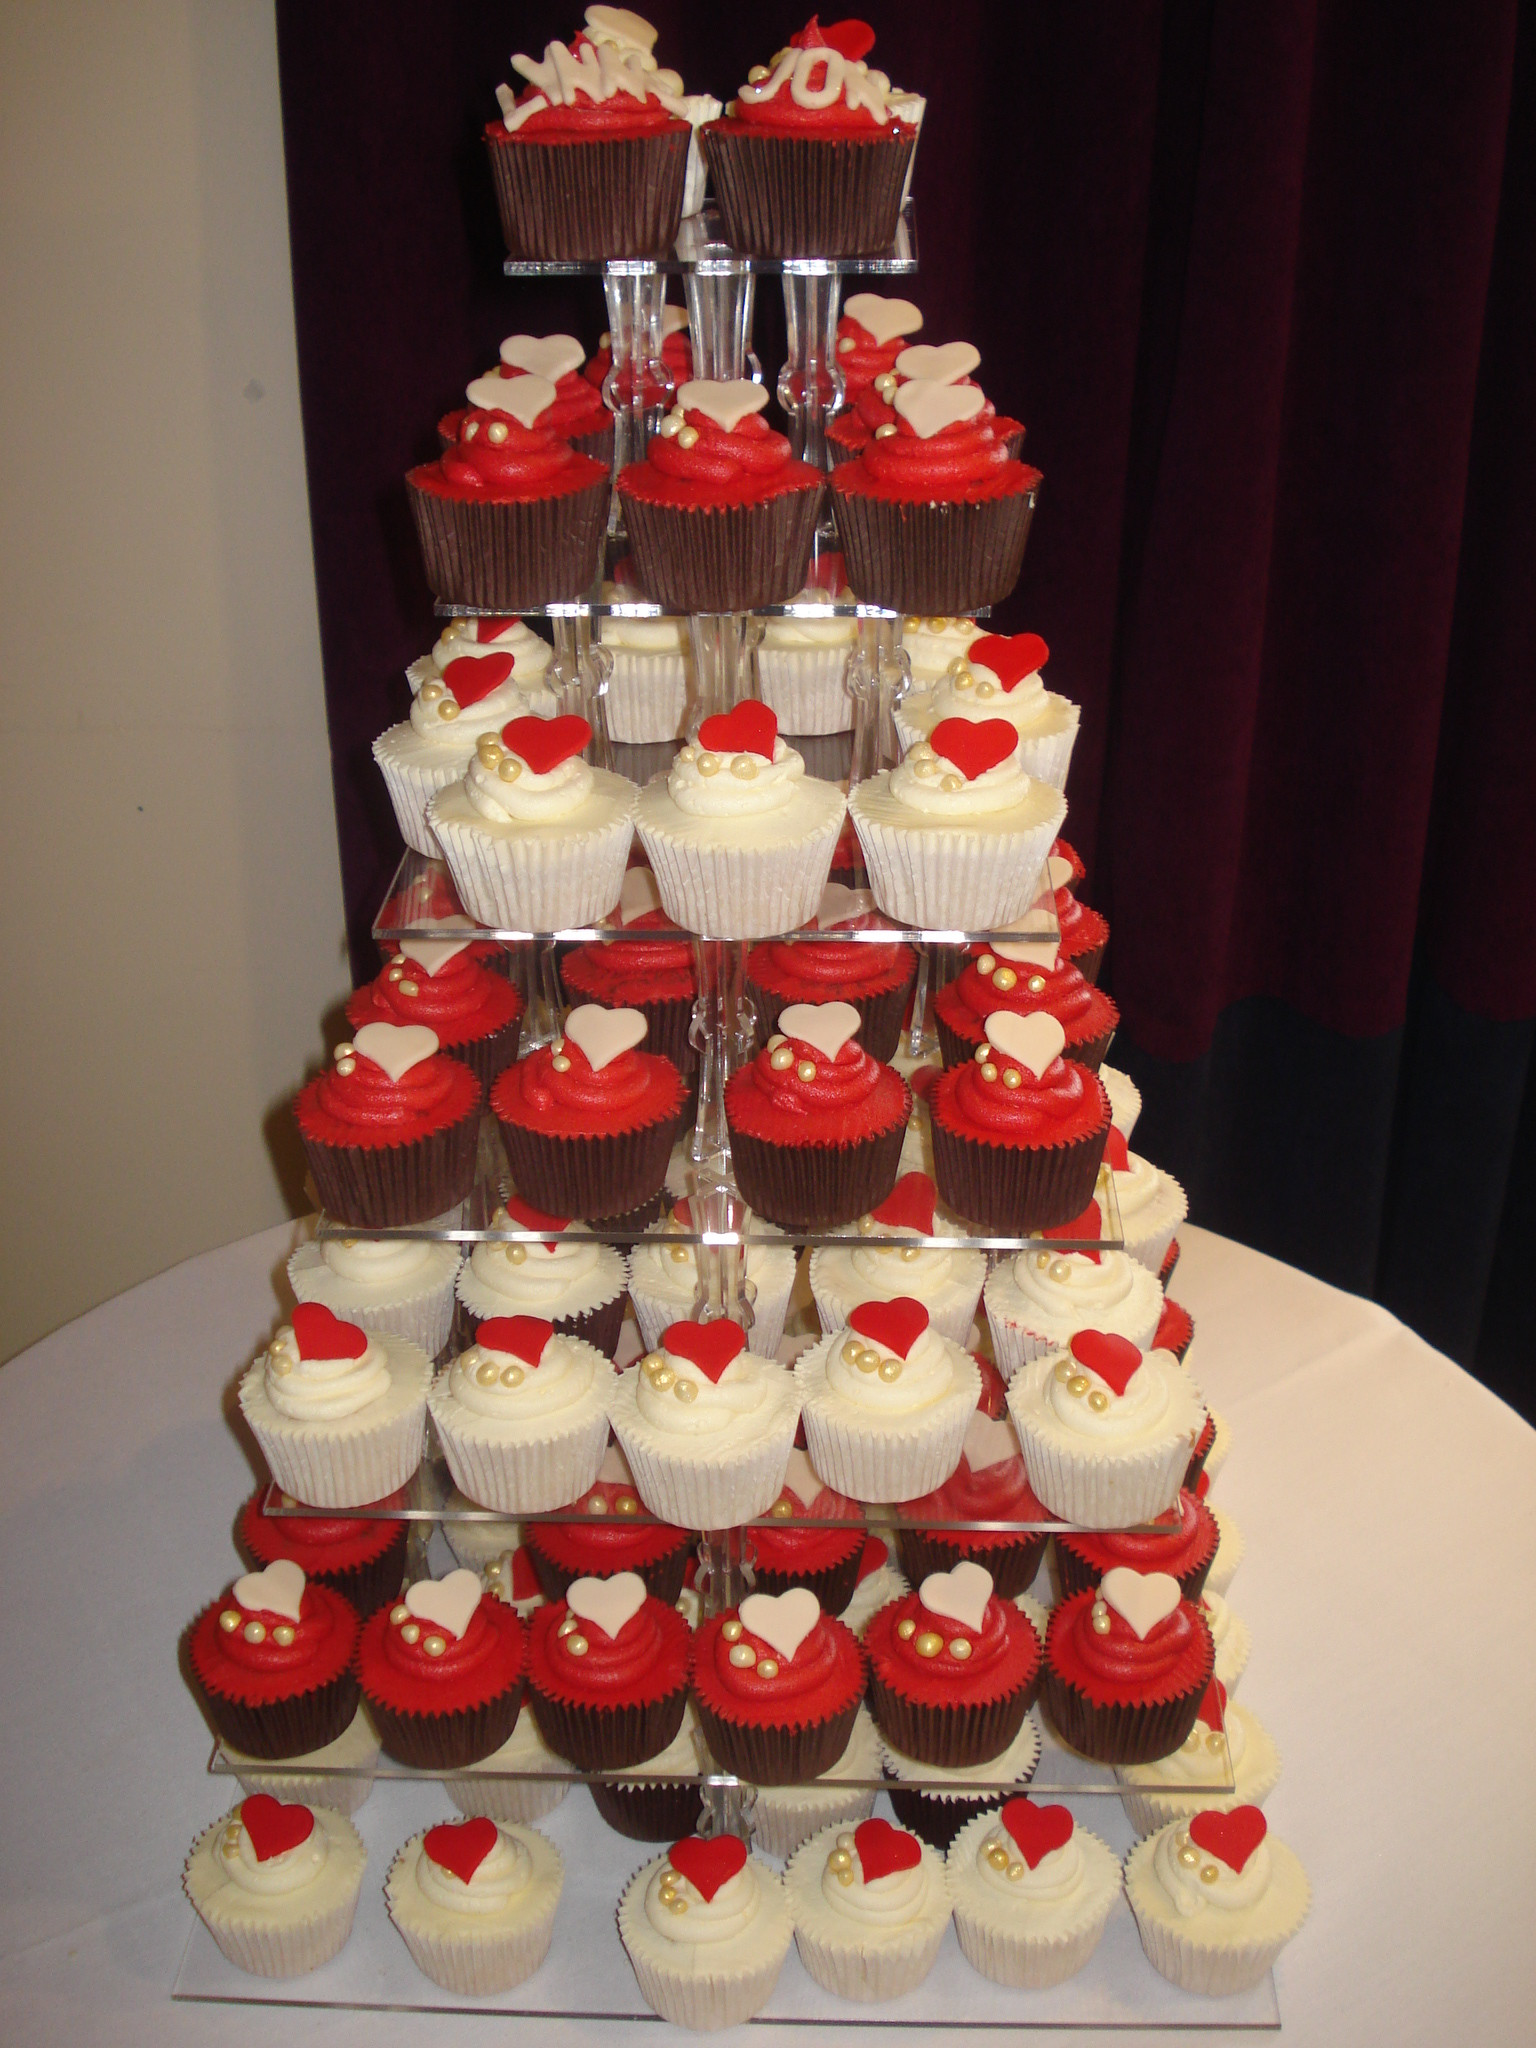 Wedding Cup Cakes  Chinese red and ivory wedding cupcakes – CAKES BY LIZZIE